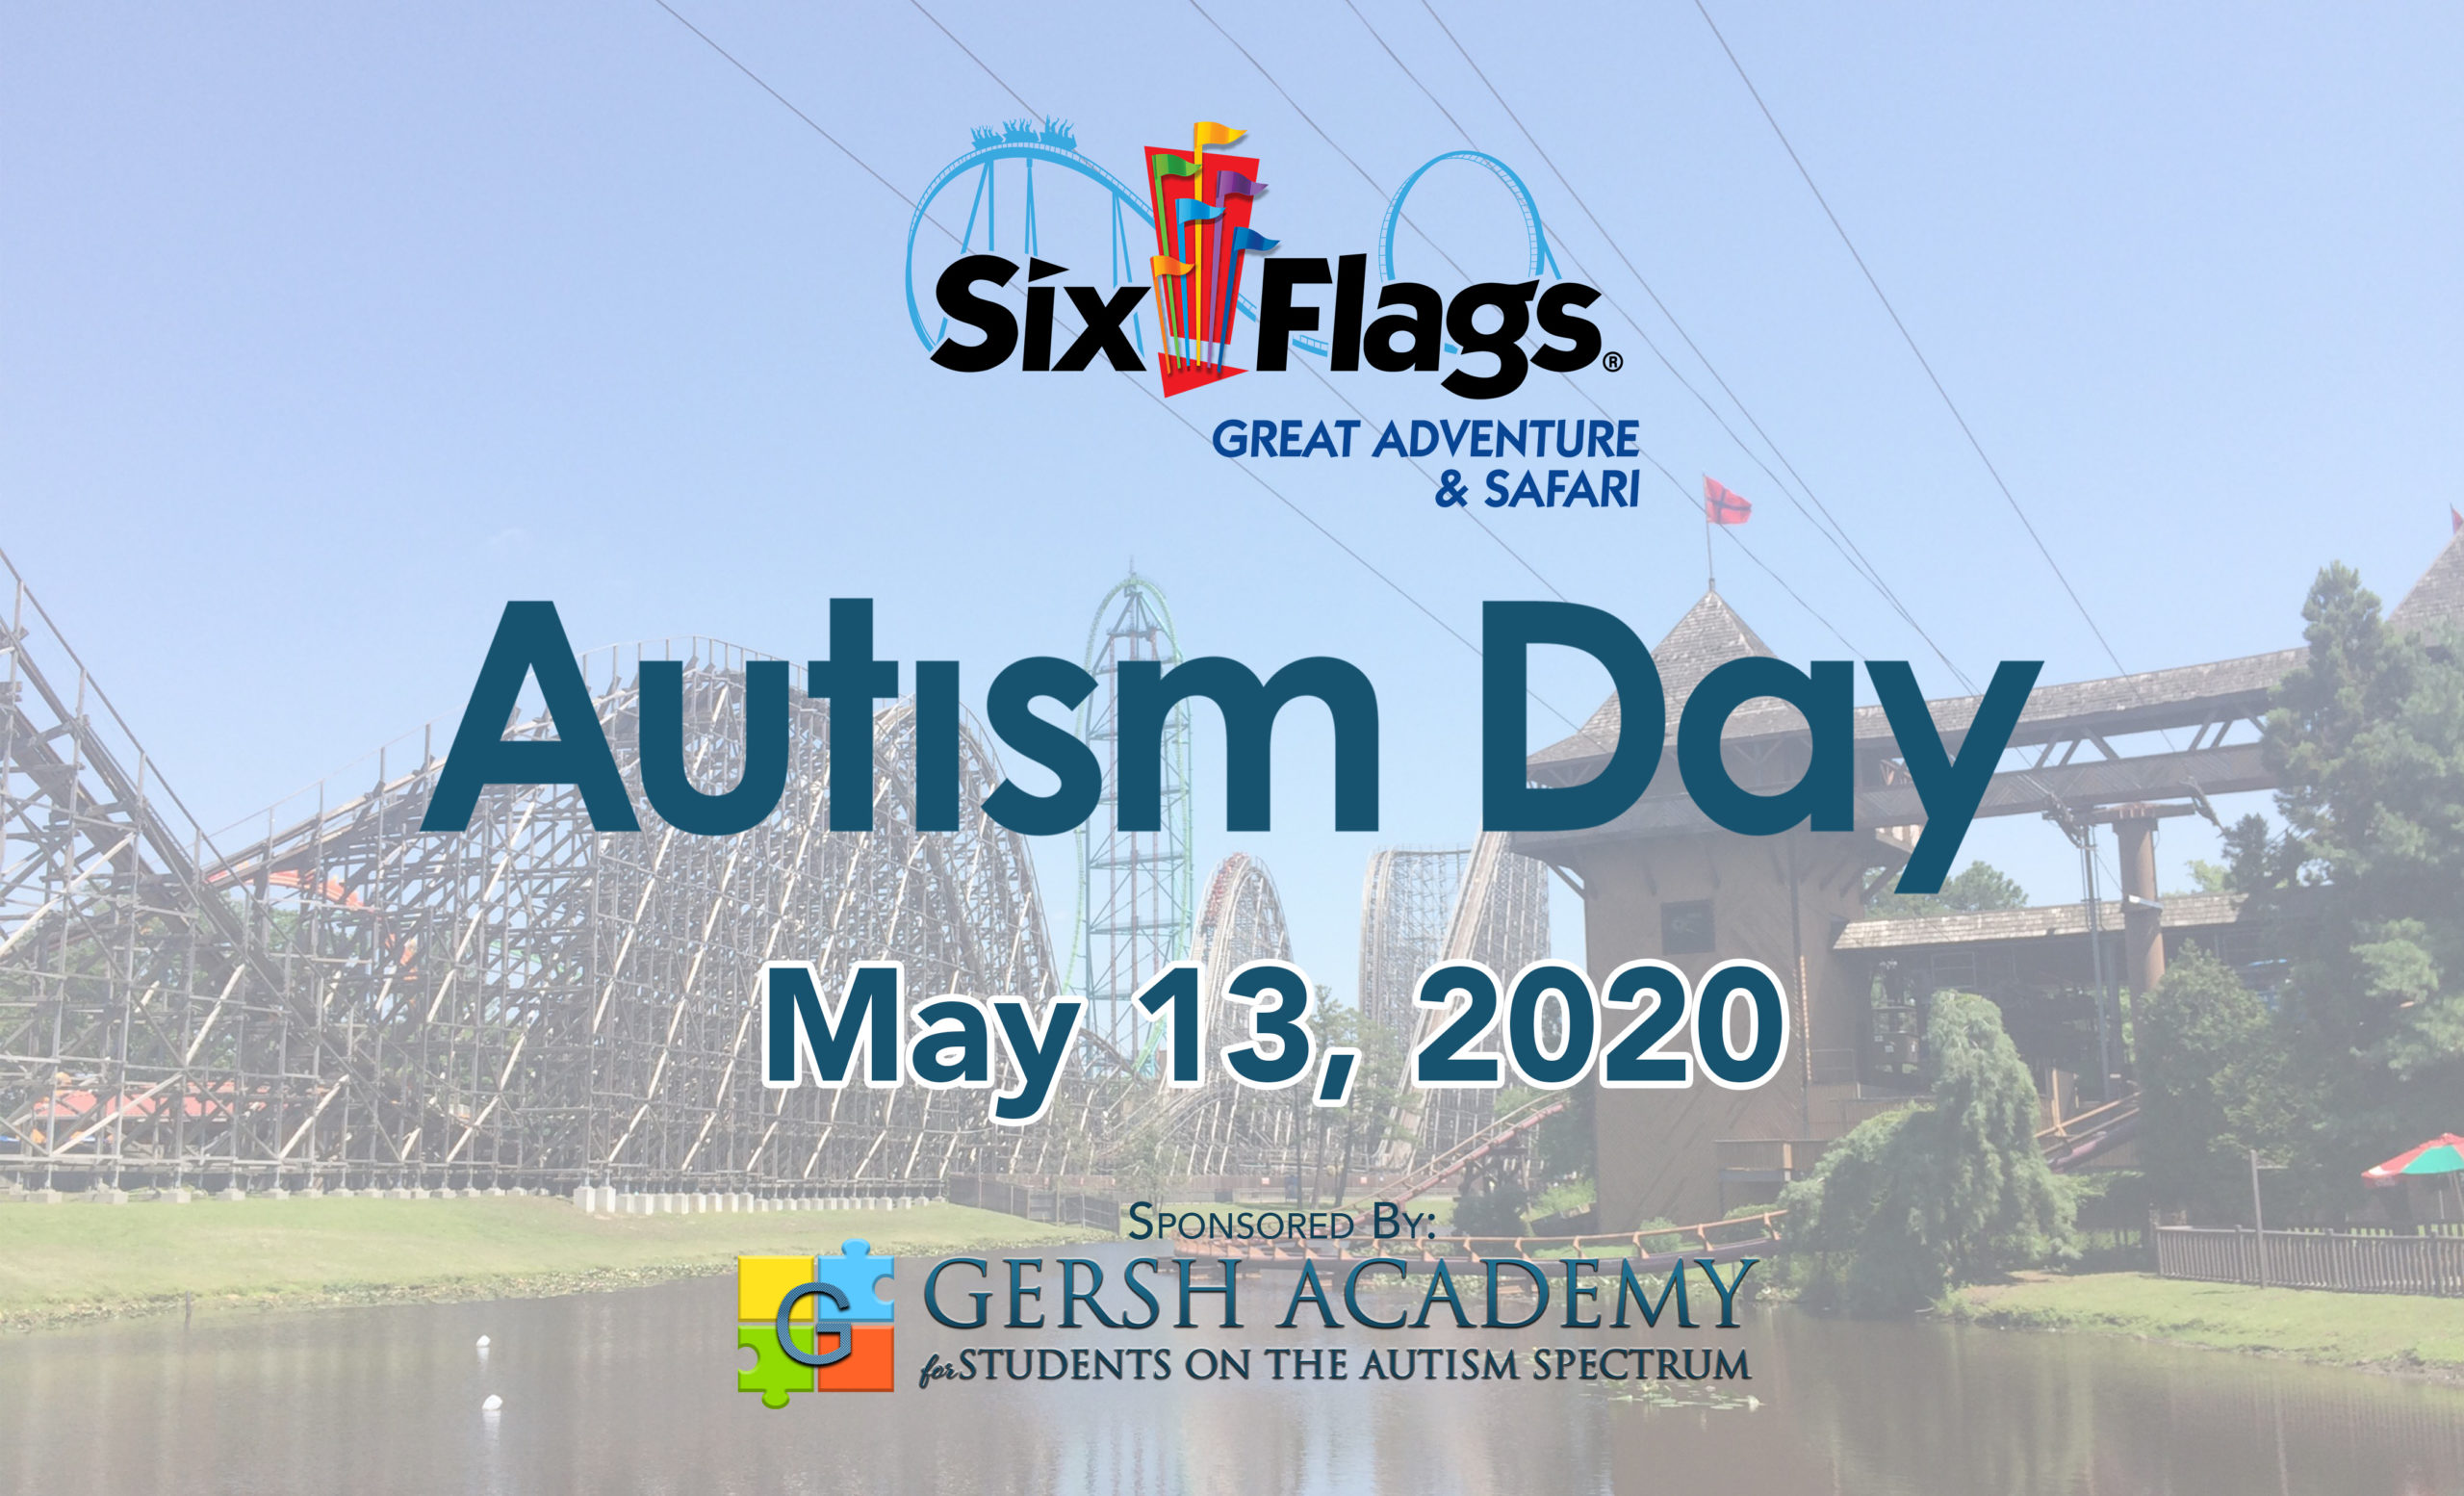 May 13, 2020 – Autism Day at Six Flags Great Adventure